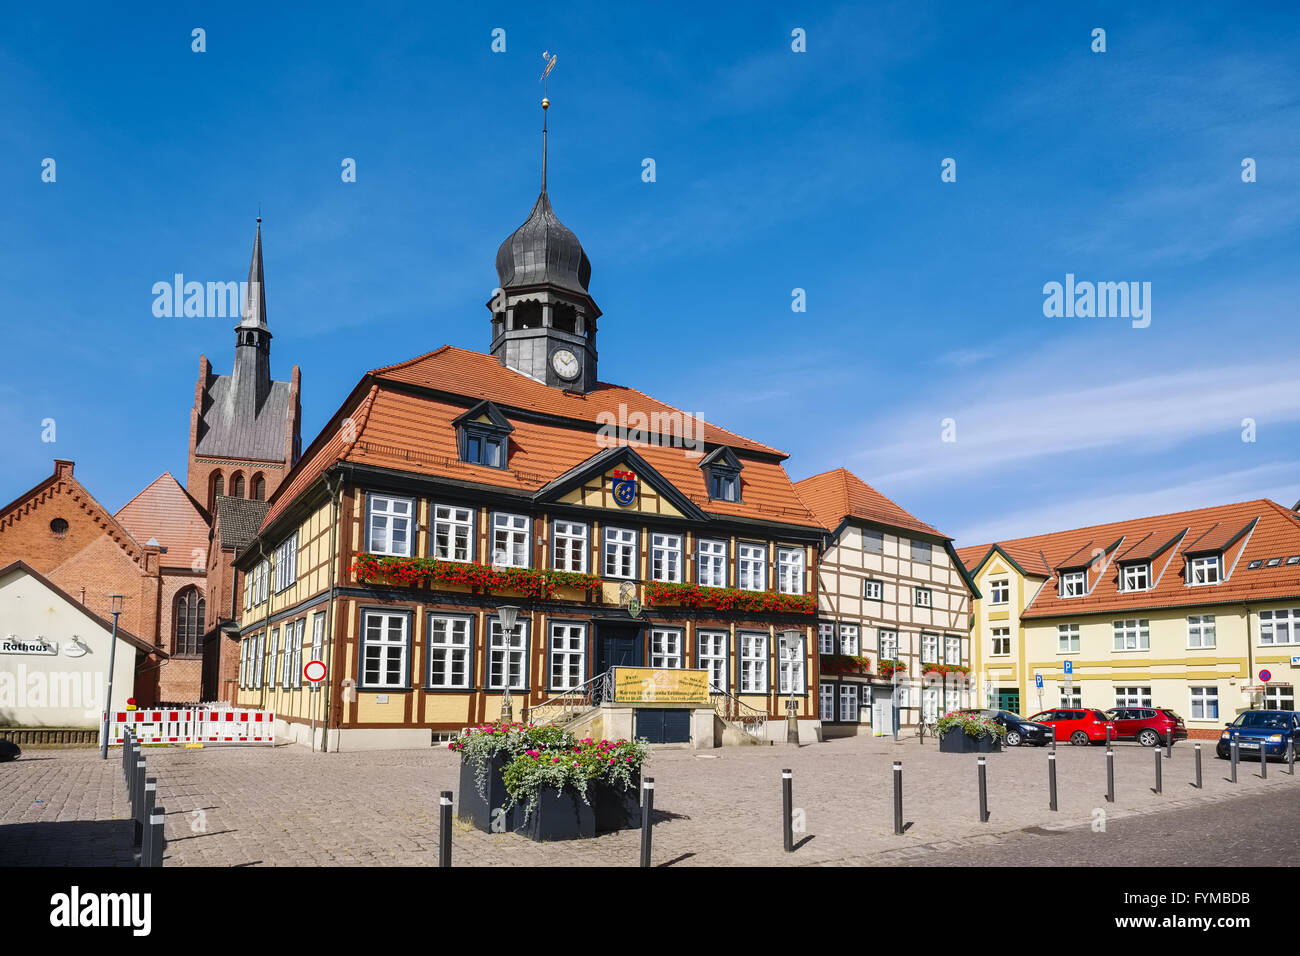 Townhall in Grabow, Germany - Stock Image